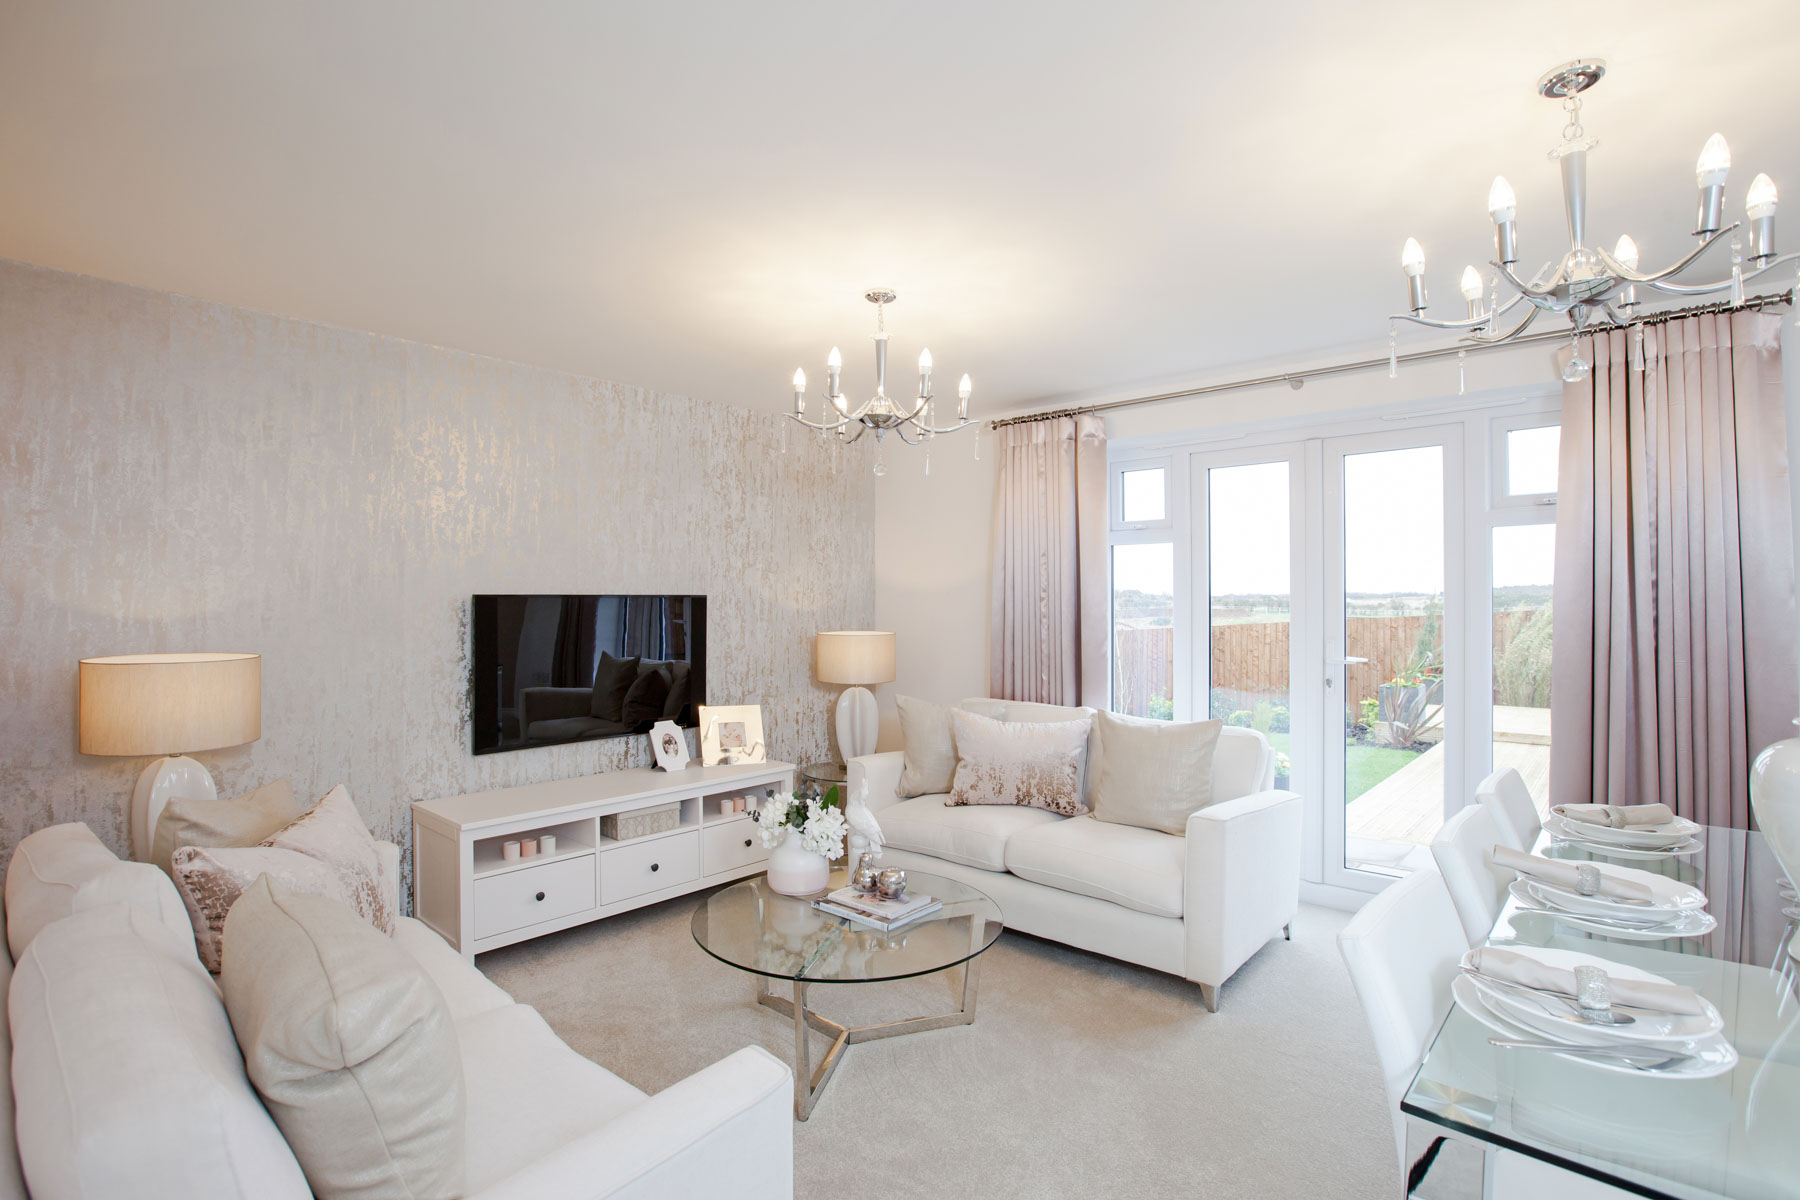 TW Exeter - Cranbrook - Crofton example living room